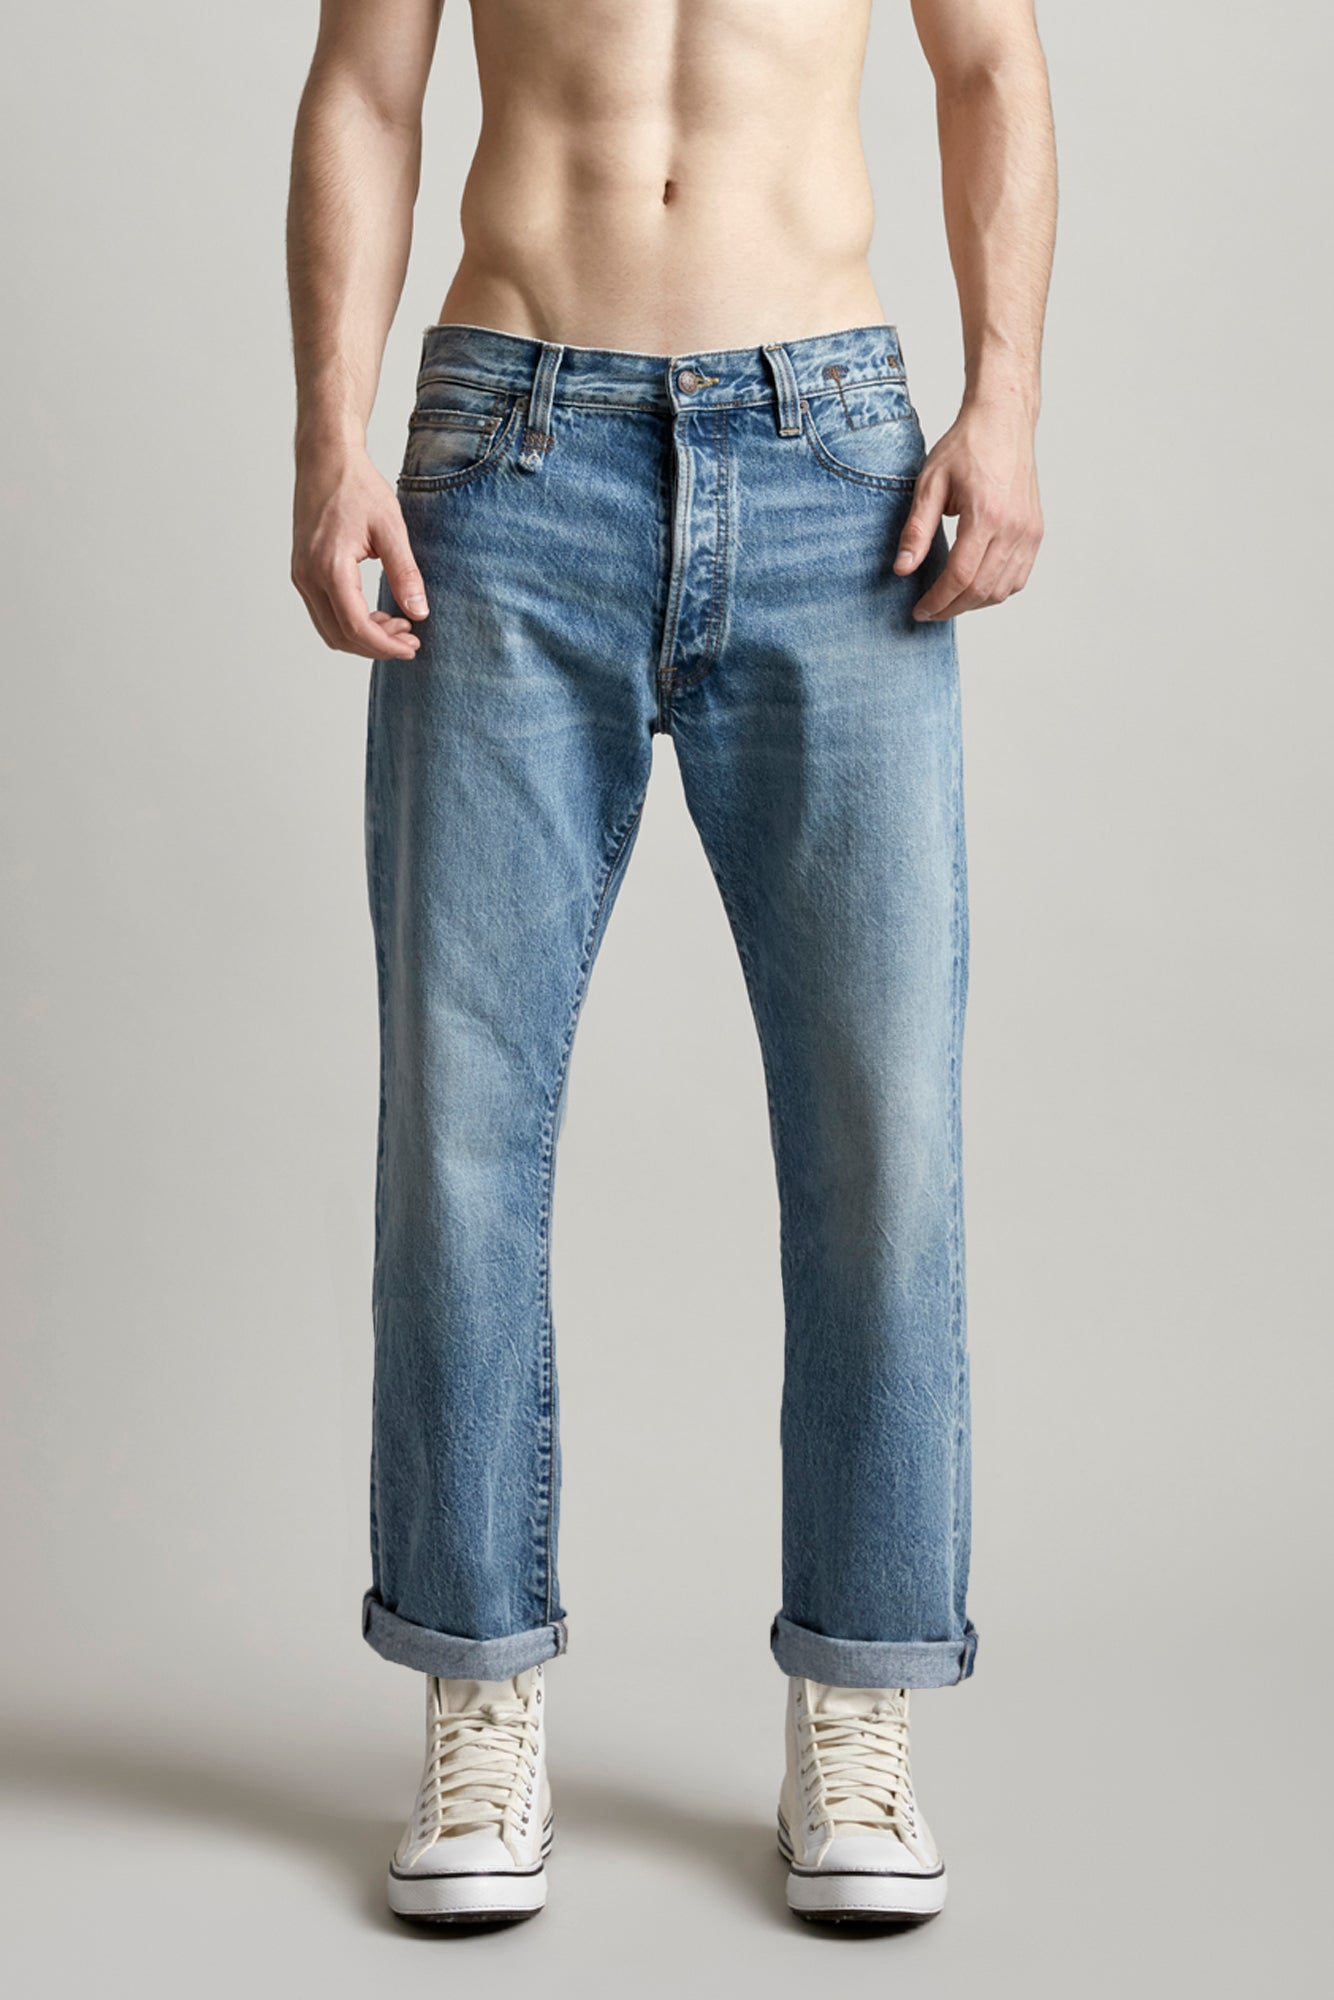 R13 Denim mid rise straight leg jeans in light blue wash